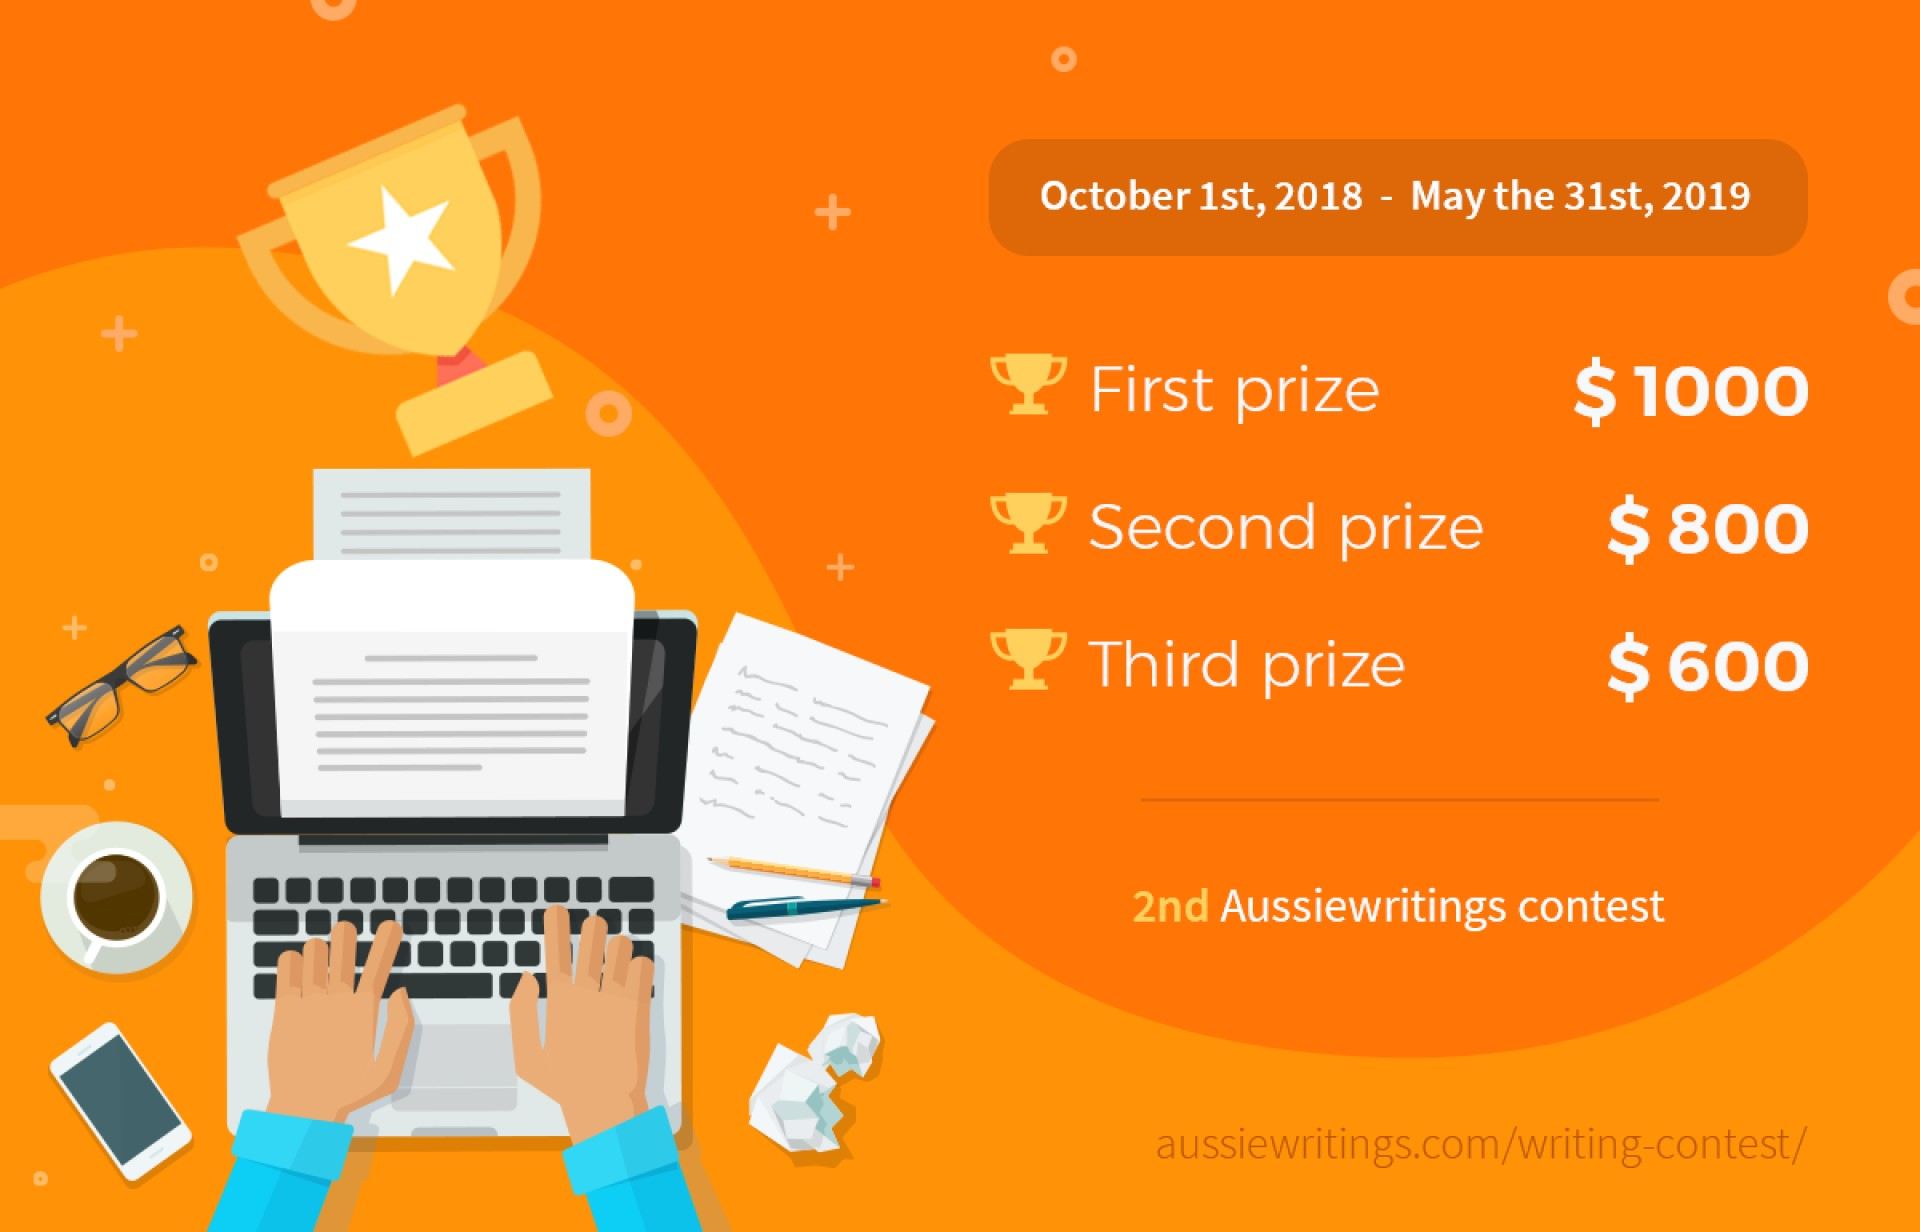 005 Essay Example Writing Incredible Contest Free Contests 2018 International Competitions For High School Students India 1920